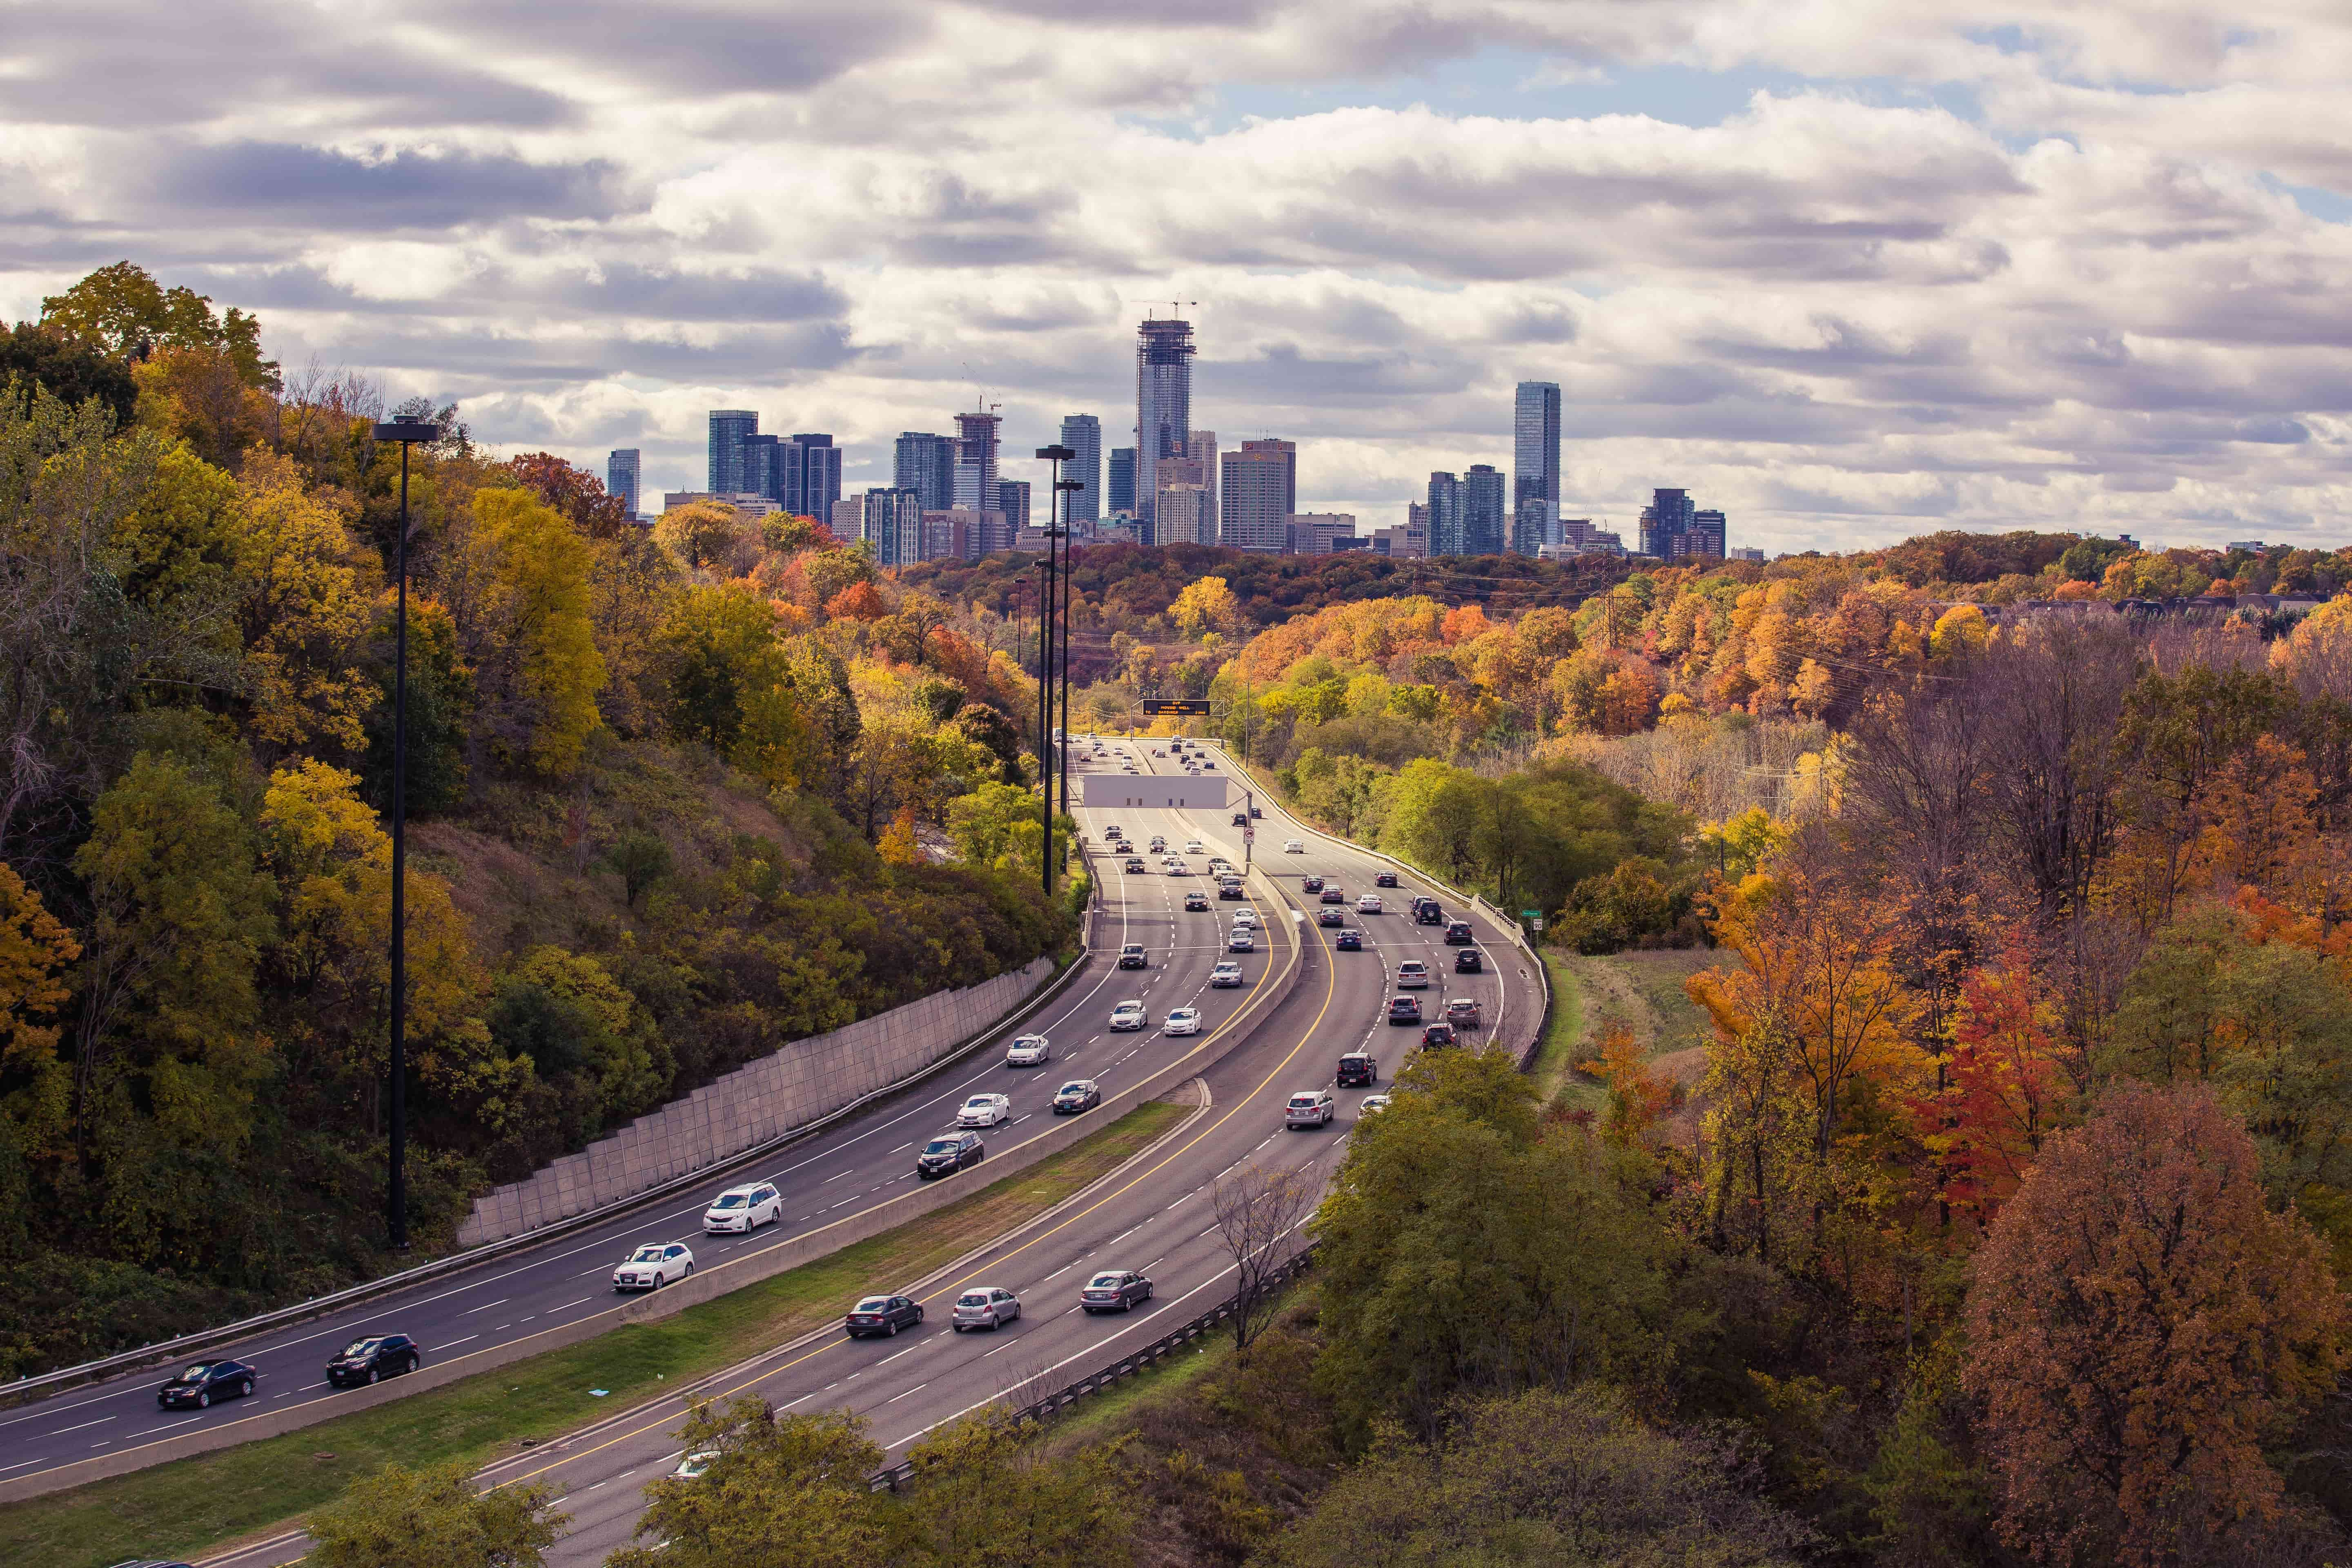 image of the Don Valley Parkway with the Toronto skyline in the distance